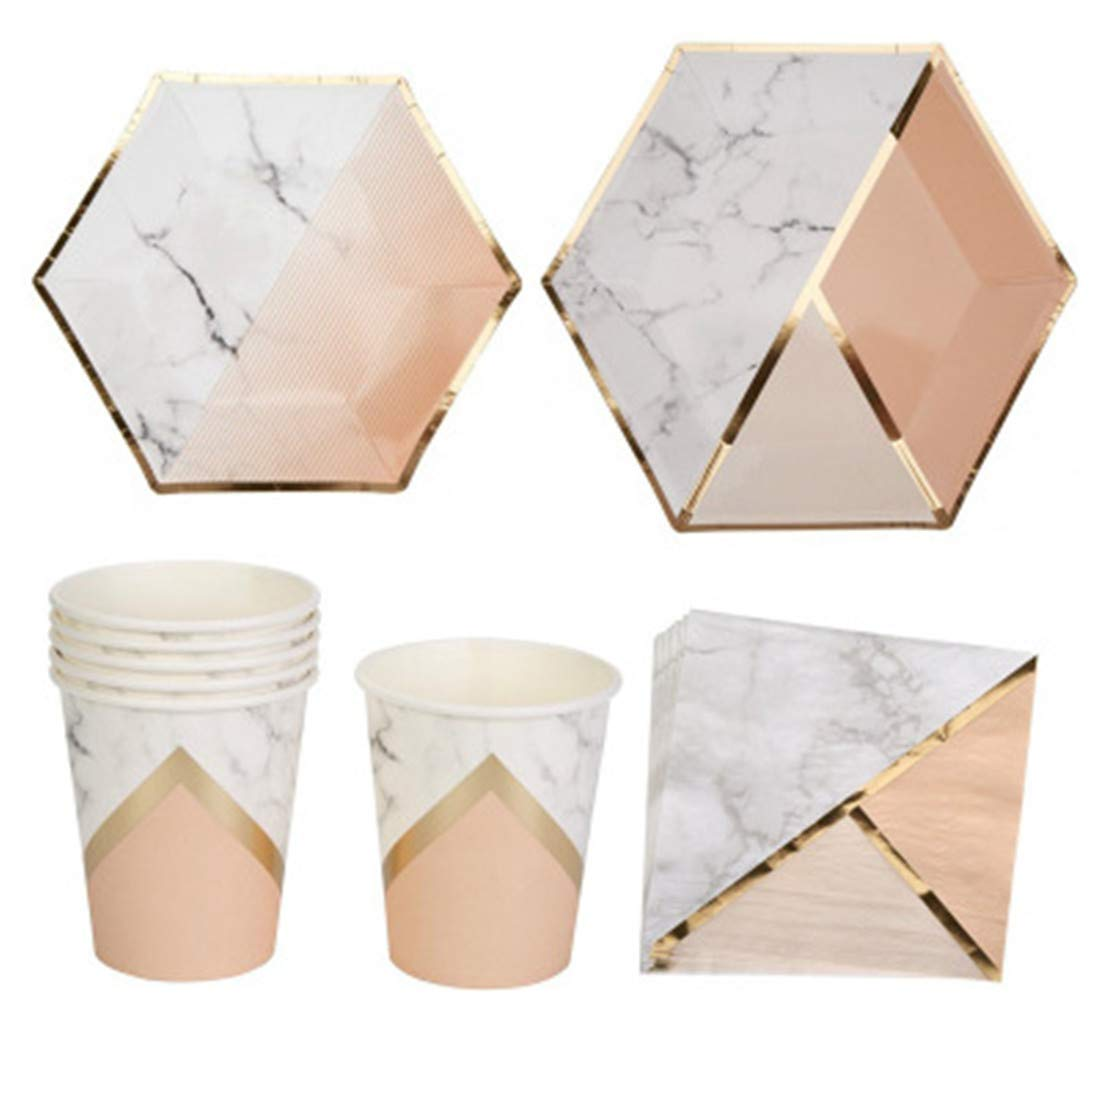 Hexagonal Irregular Plate Set Party Birthday Tableware Disposable Paper Plate Gilding Drink Paper Cup